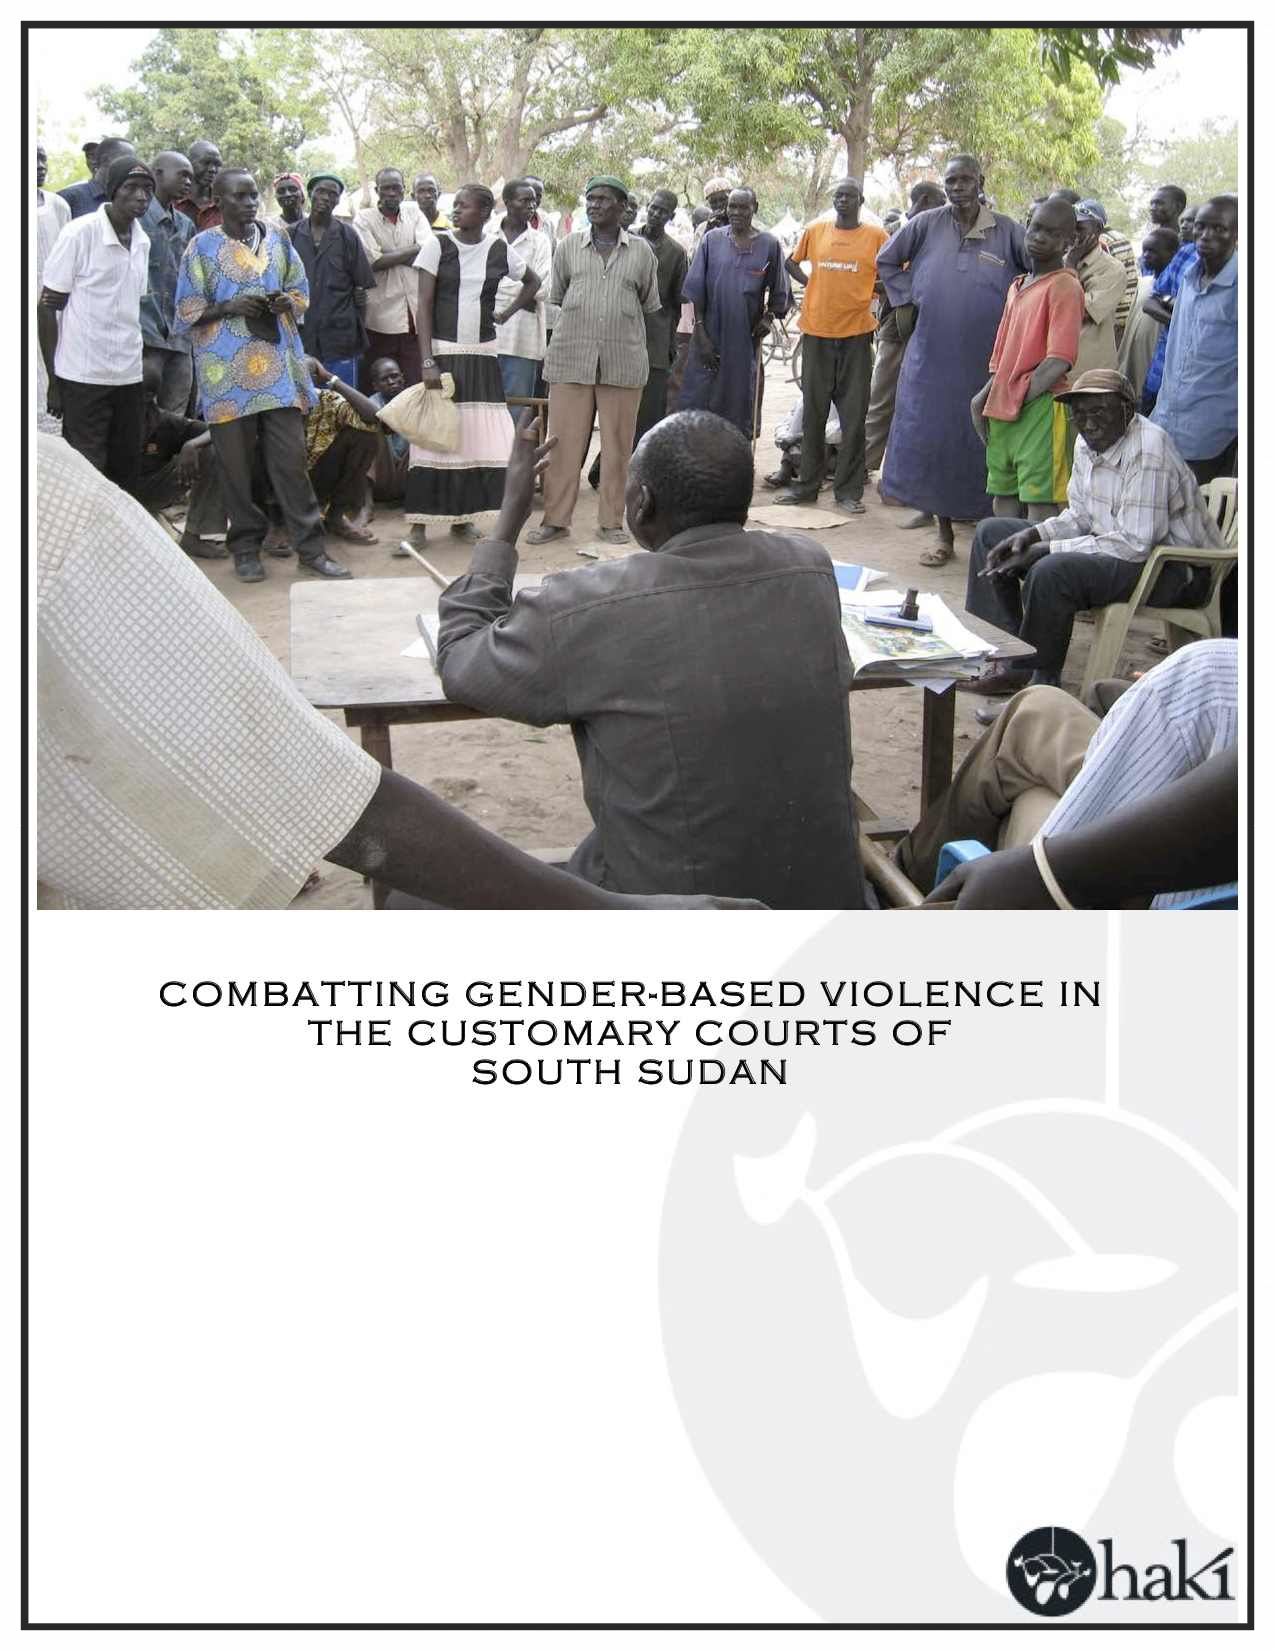 Combatting Gender-Based Violence in the Customary Courts of South Sudan